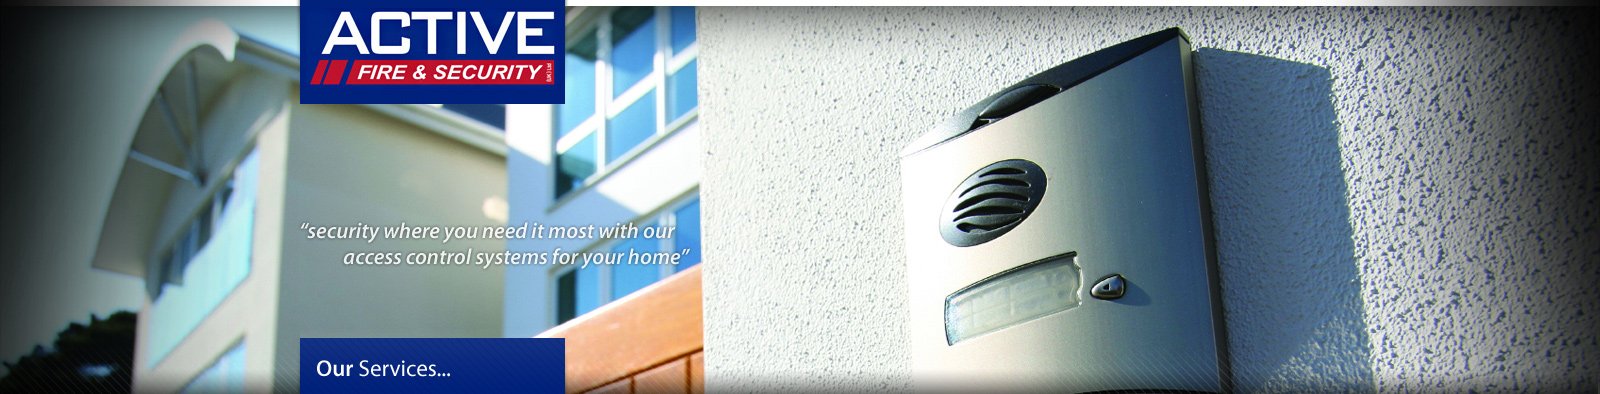 Active Fire Amp Security Fire Amp Security System Installers